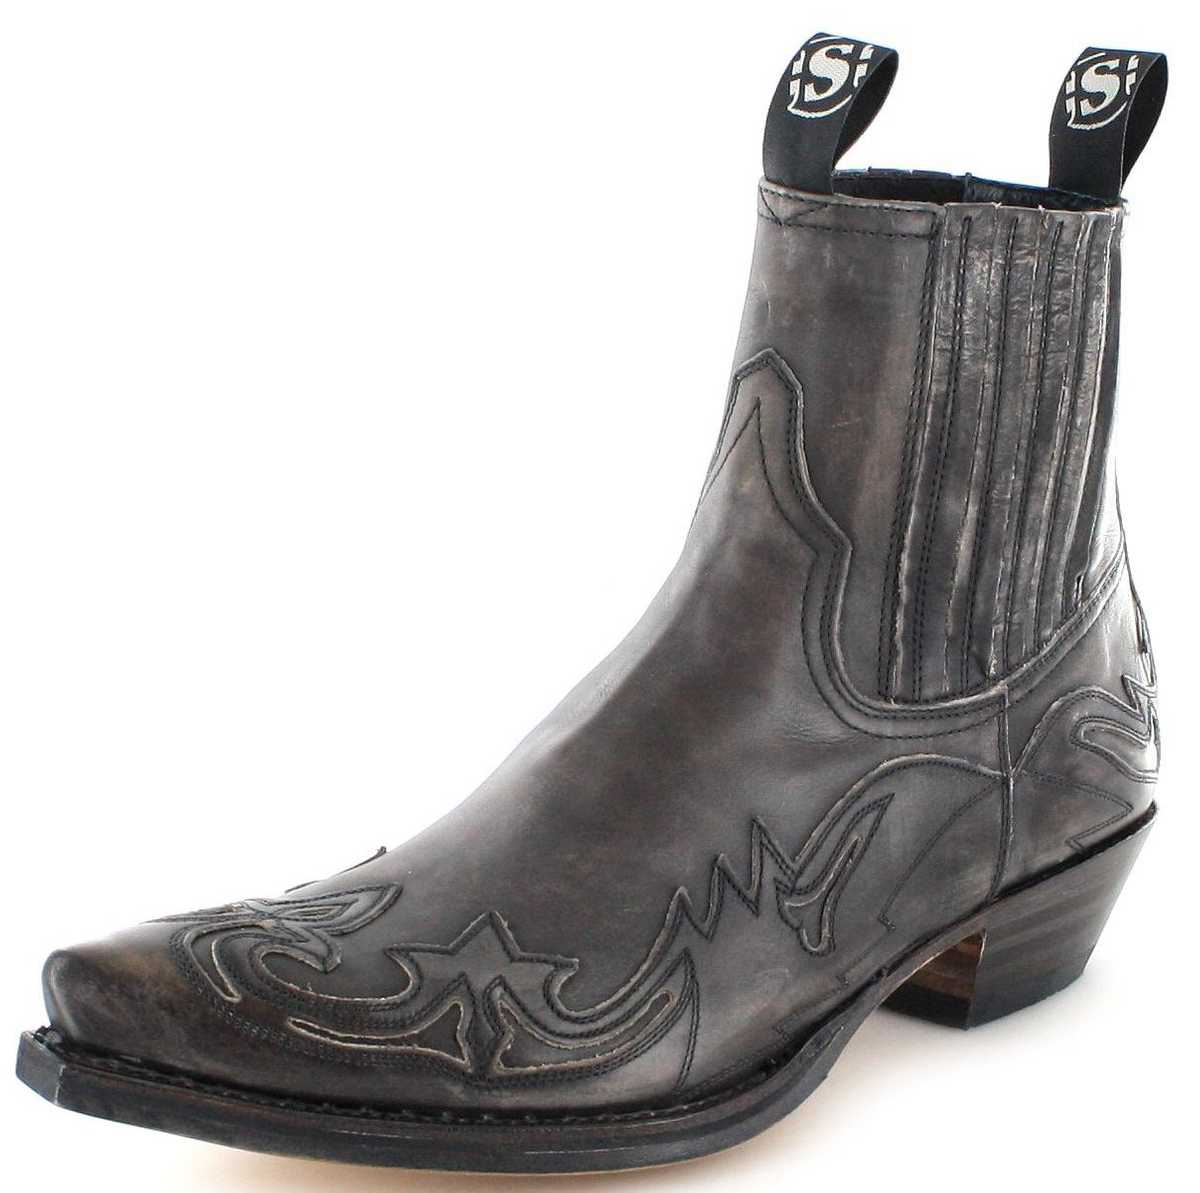 Sendra Boots 4660 Antracita Western ankle boot - Grey